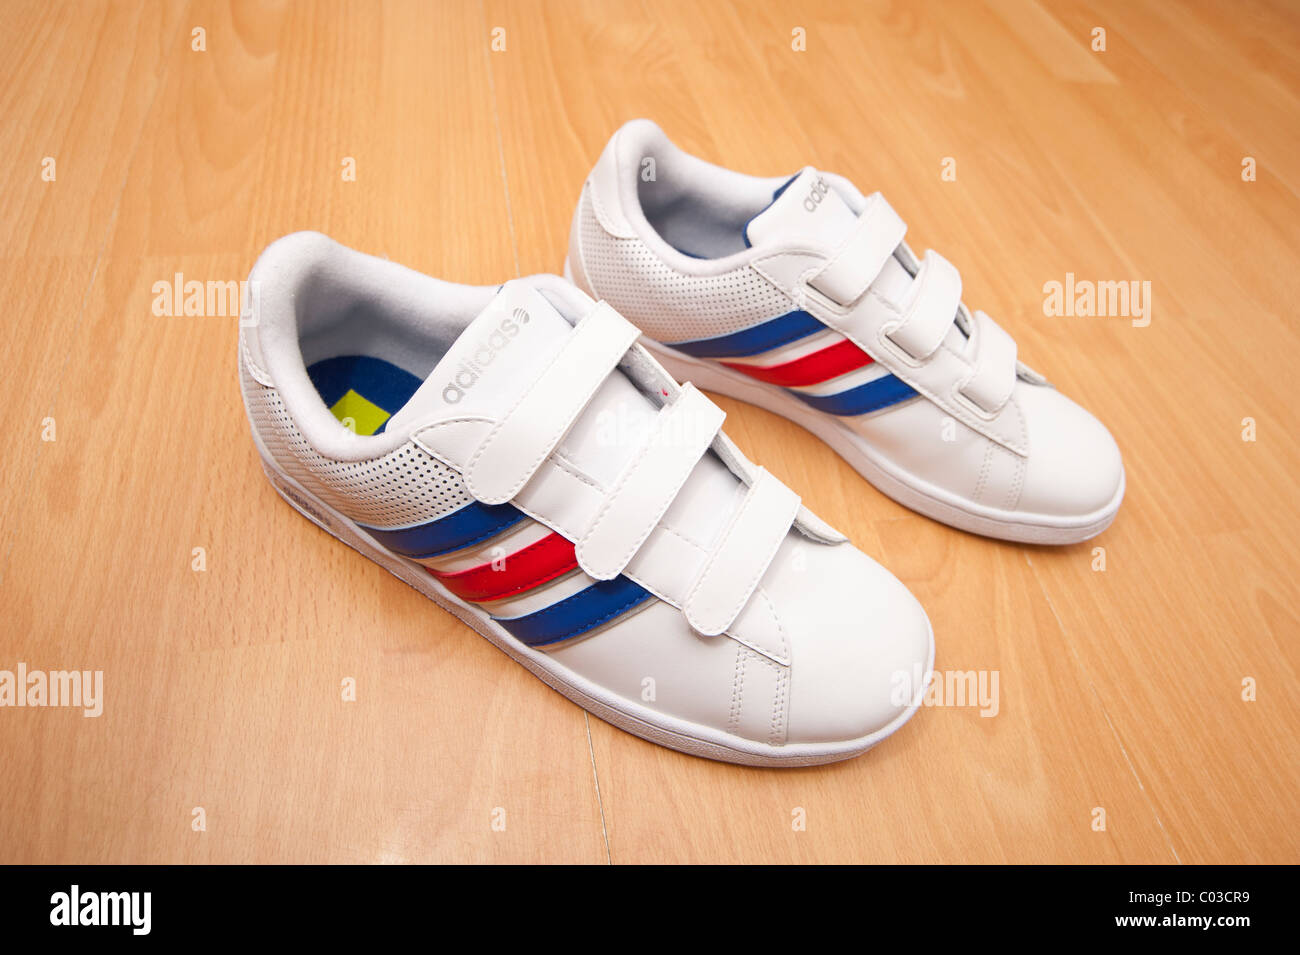 A picture of a brand new pair of adidas velcro fastening for kids training shoes ( trainers ) - Stock Image